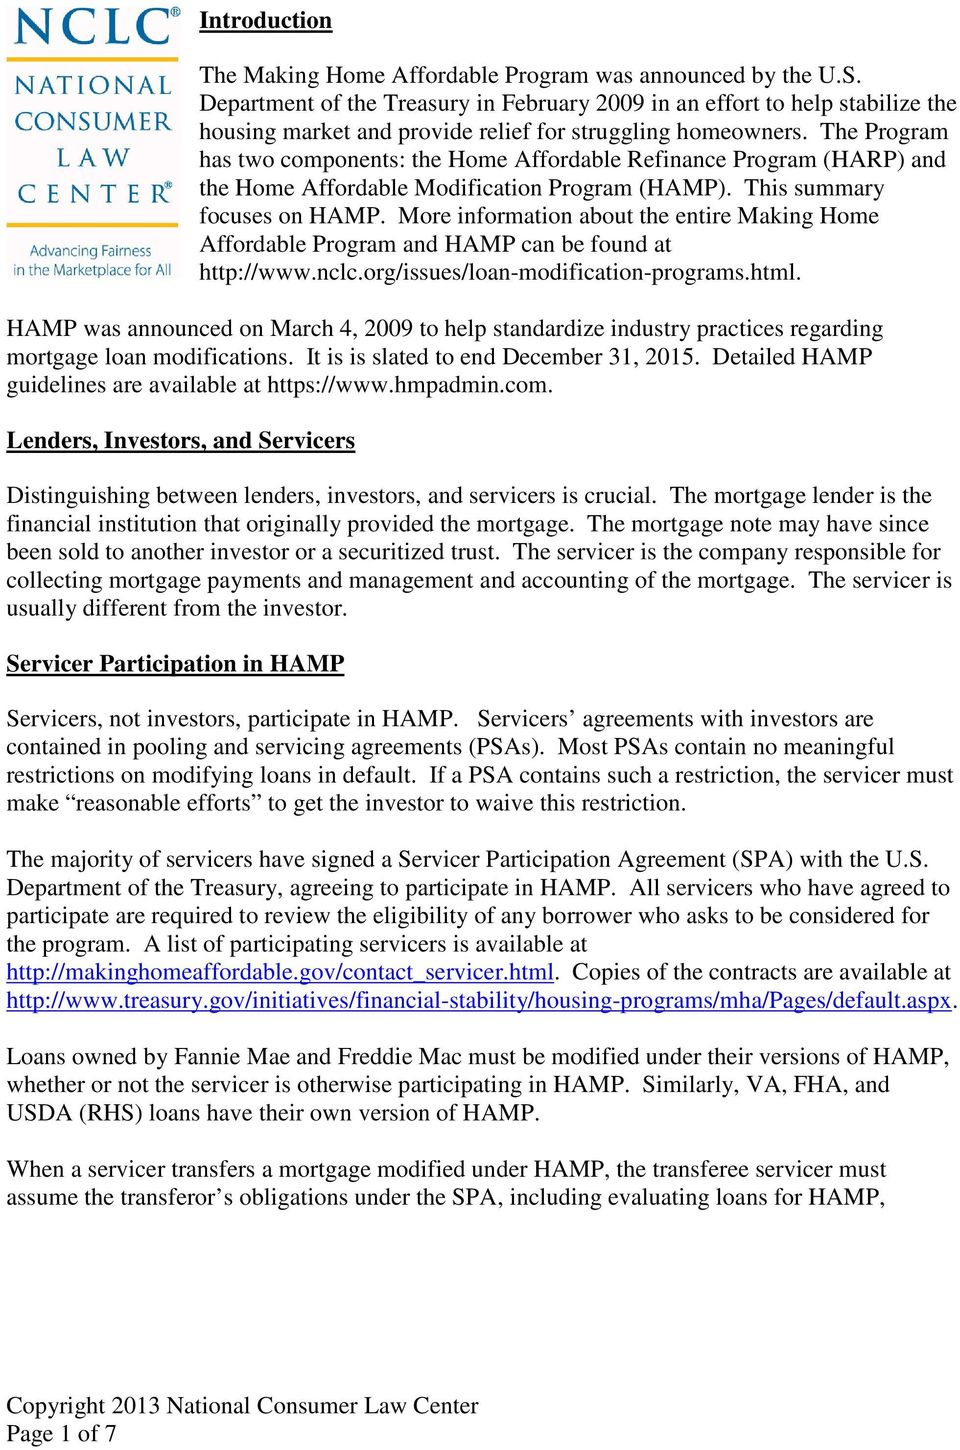 The Program has two components: the Home Affordable Refinance Program (HARP) and the Home Affordable Modification Program (HAMP). This summary focuses on HAMP.